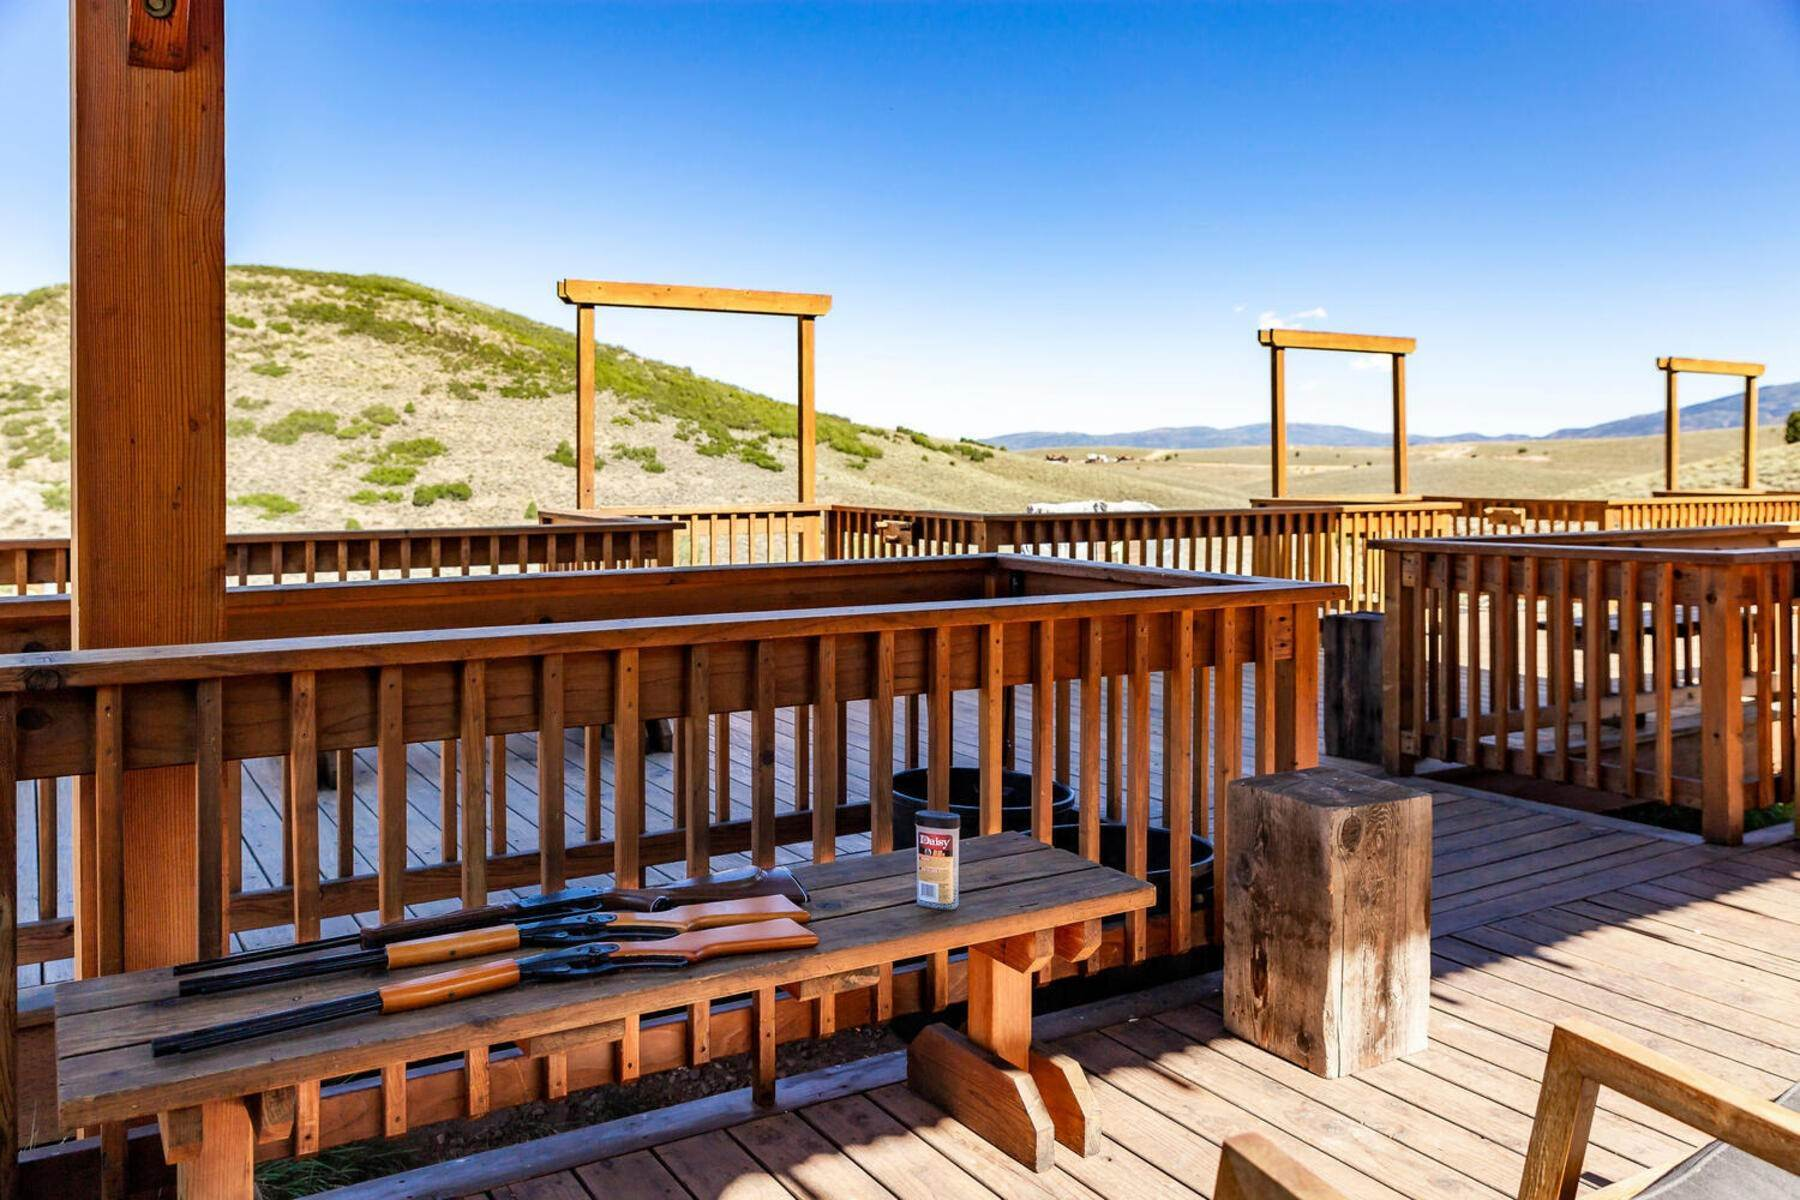 26. fractional ownership prop for Sale at 1/8 Fractional Ownership Opportunity In Brand New Kingfisher Cabin 7615 E Stardust Court #319E, 5.13 Heber City, Utah 84032 United States